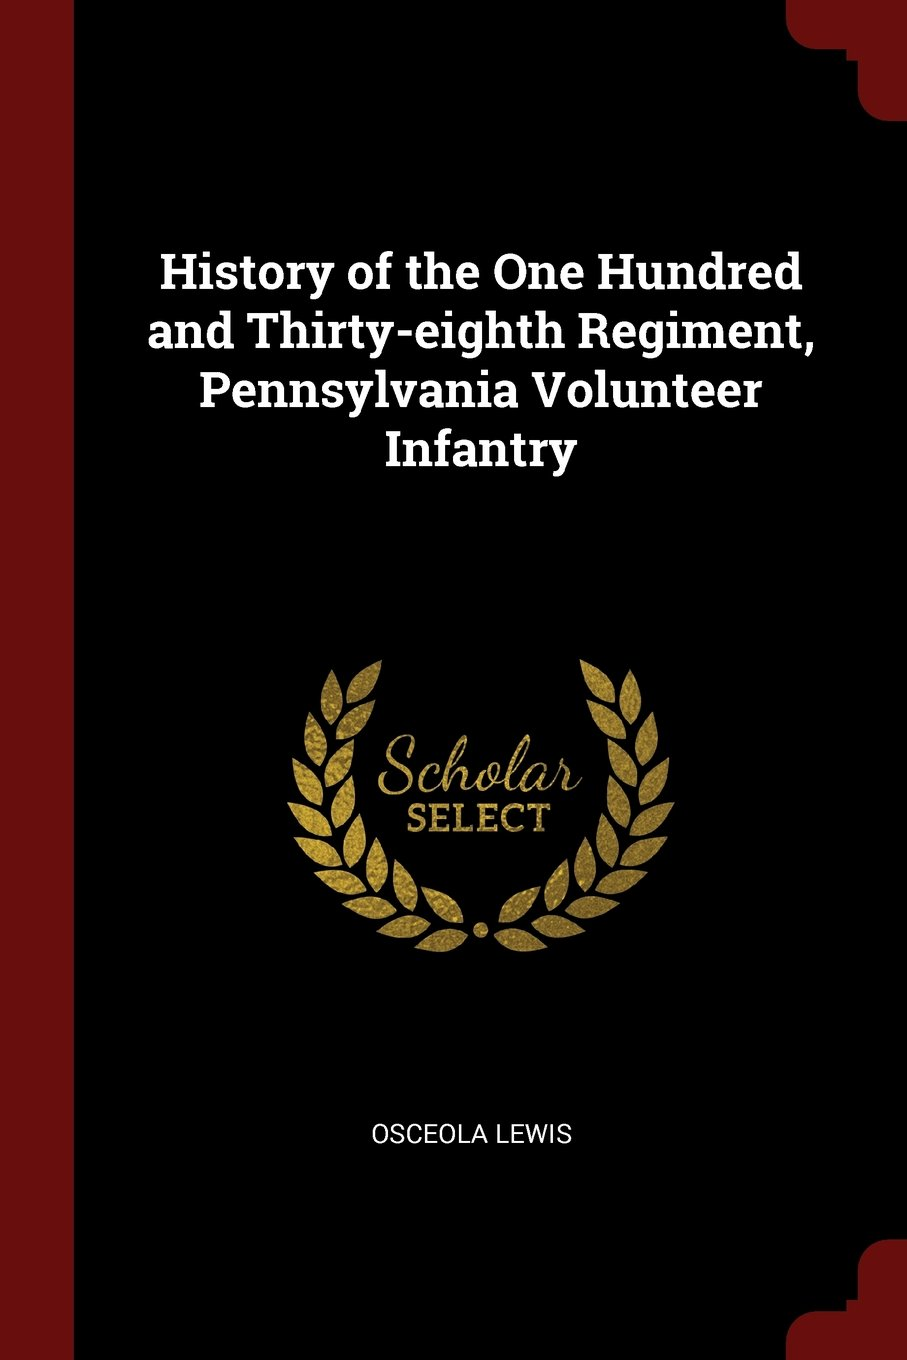 Download History of the One Hundred and Thirty-eighth Regiment, Pennsylvania Volunteer Infantry pdf